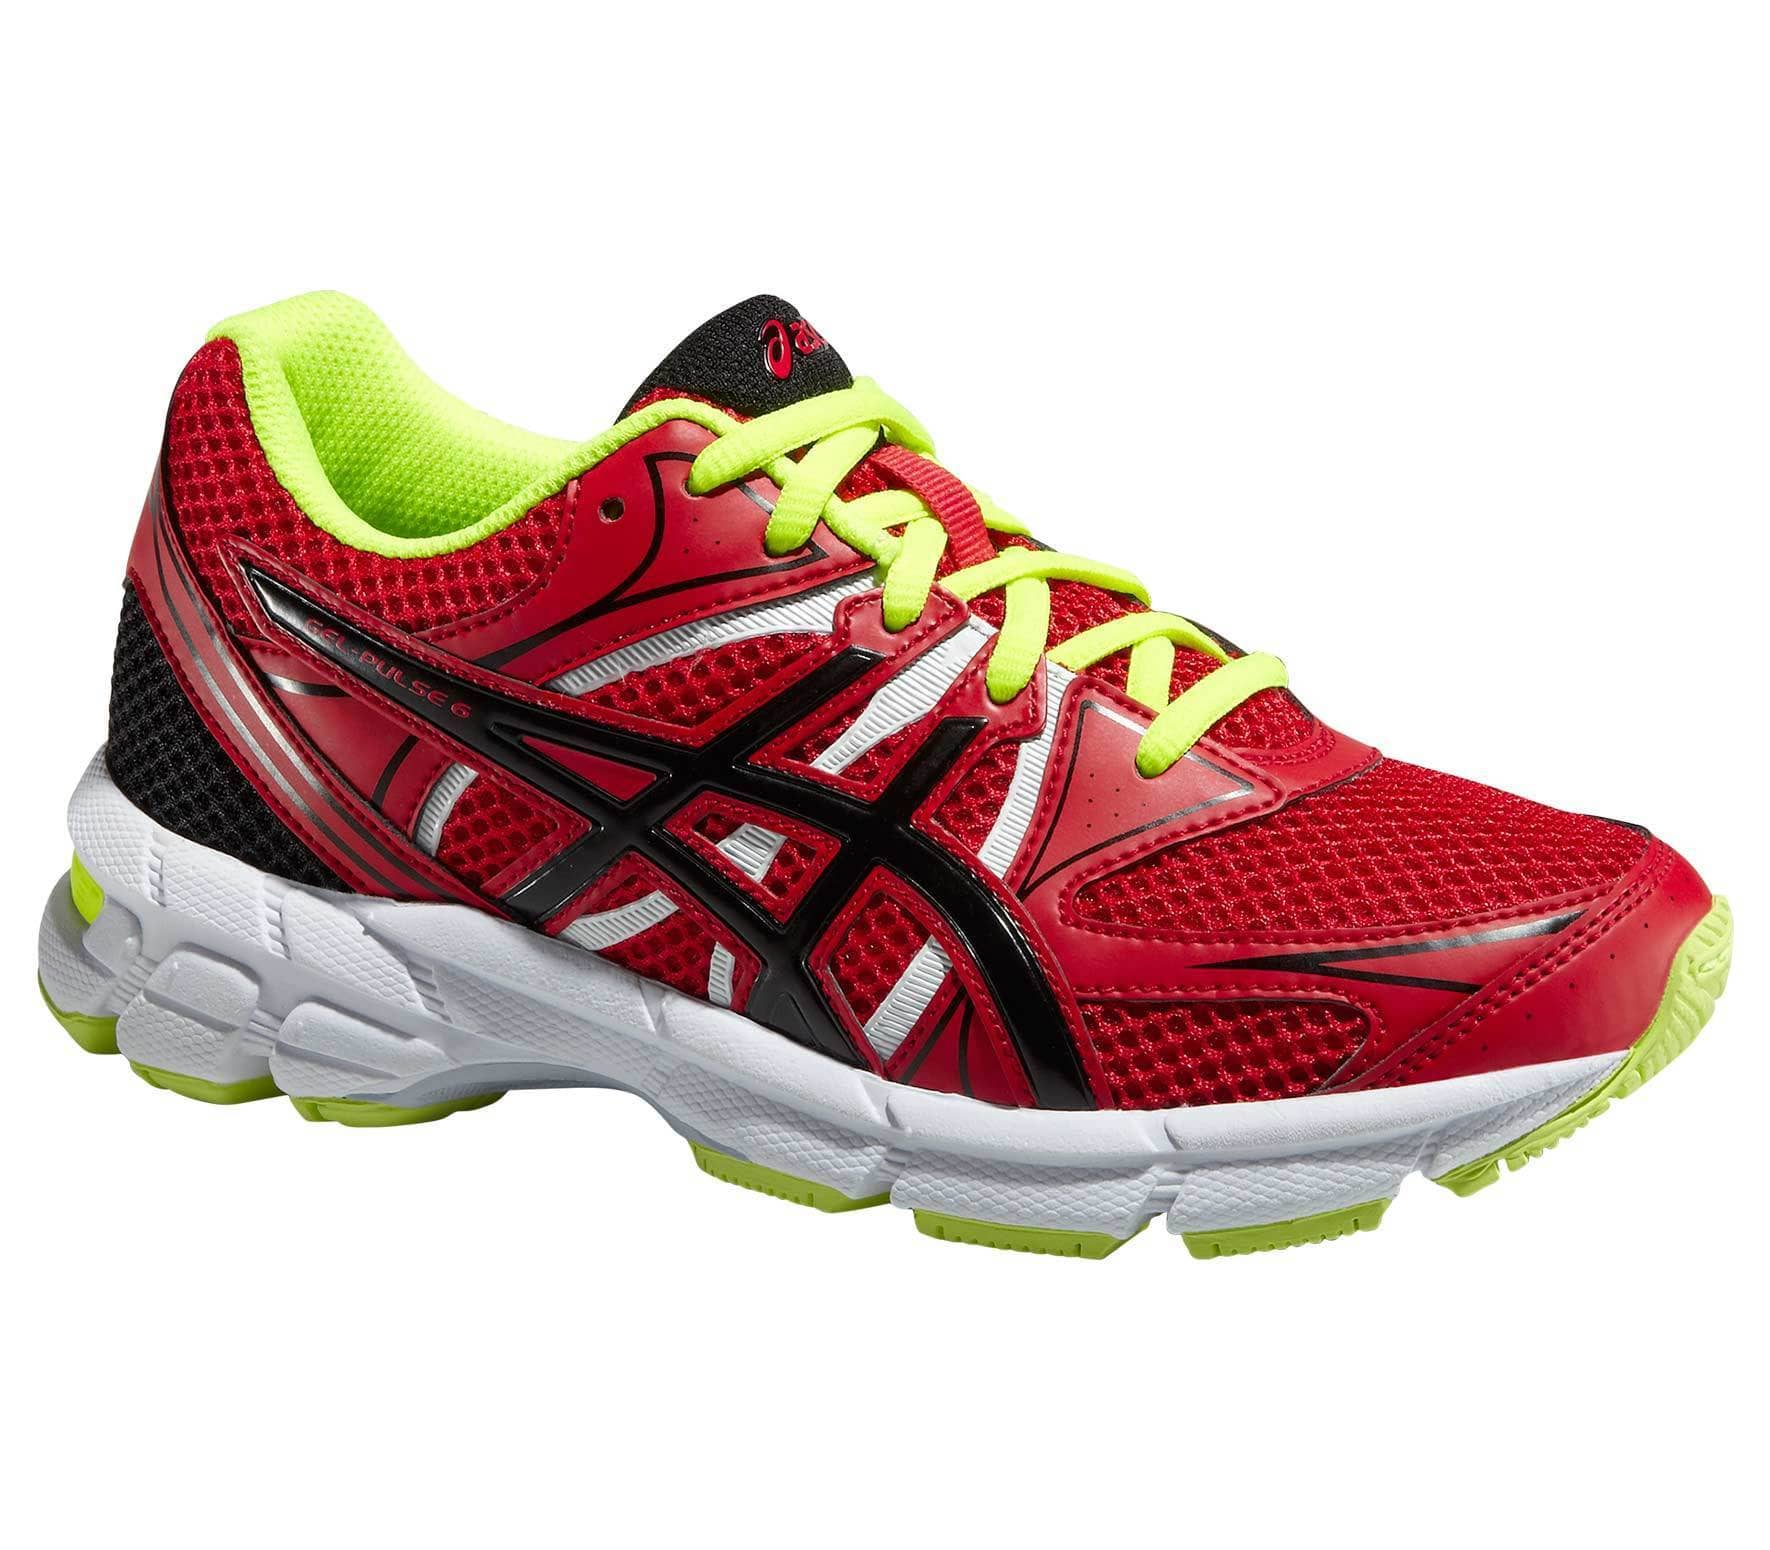 f9d94886f4e0b ASICS - Gel-Pulse 6 GS Junior running shoes (red yellow) - buy it at ...